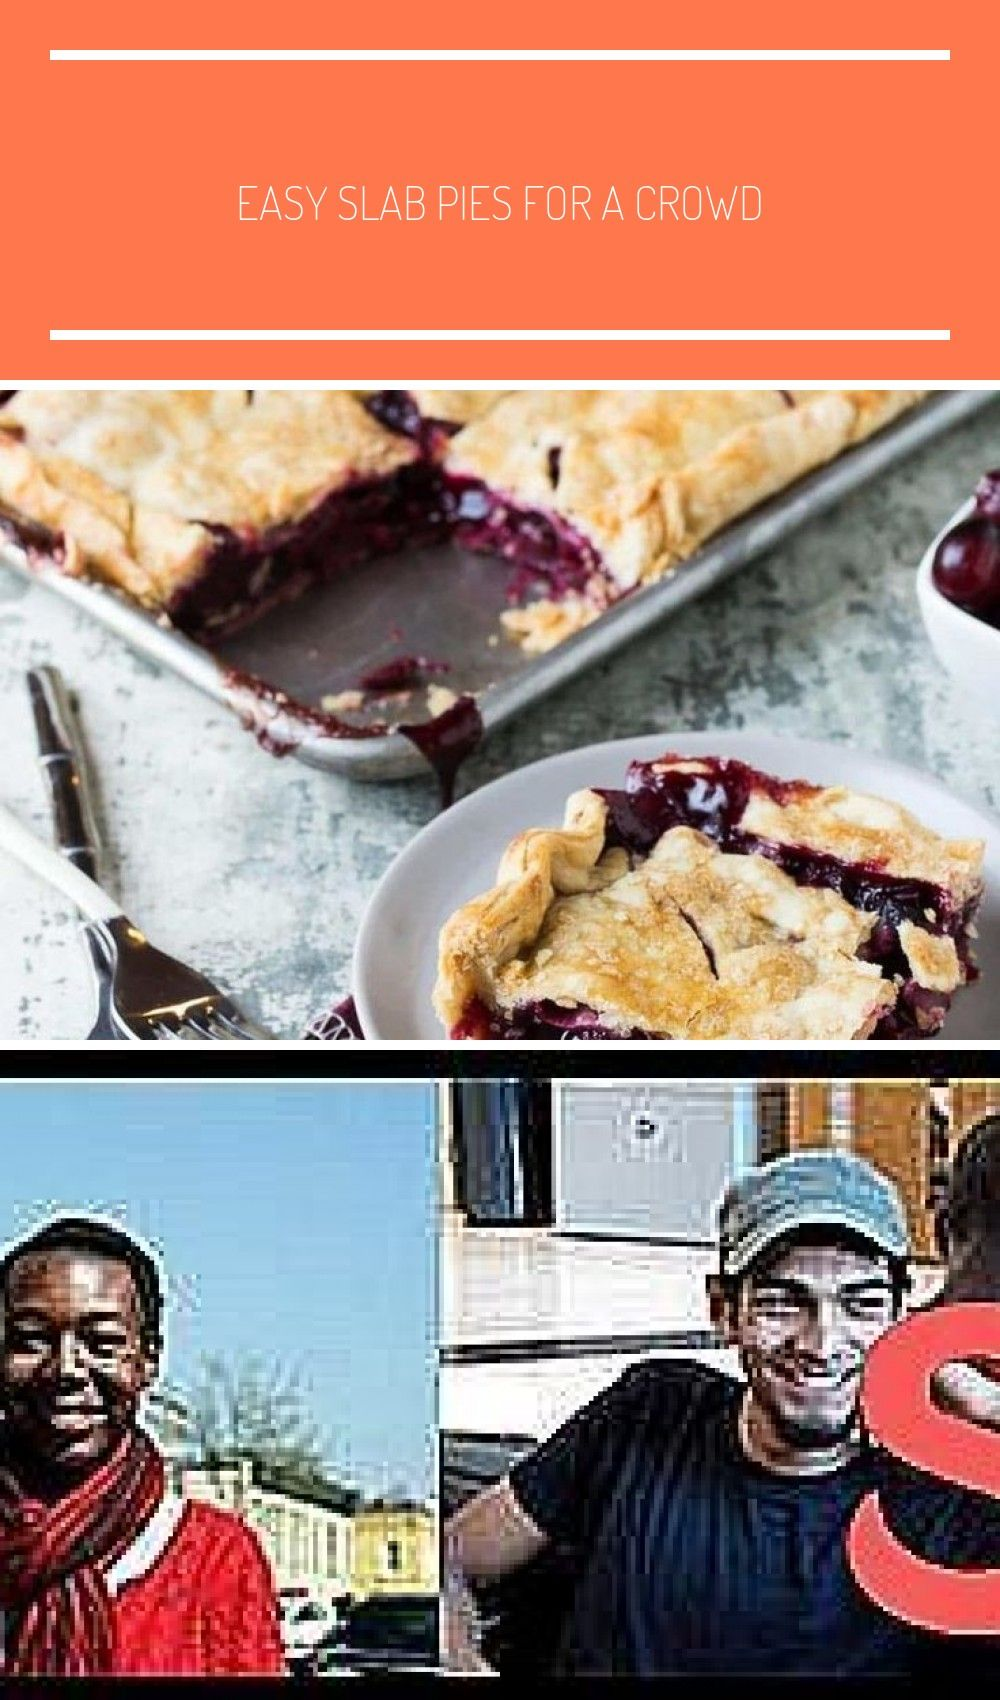 25 Easy Slab Pies For a Crowd Cranberry Cherry Slab Pie for a crowd sheet pan Easy Slab Pies For a